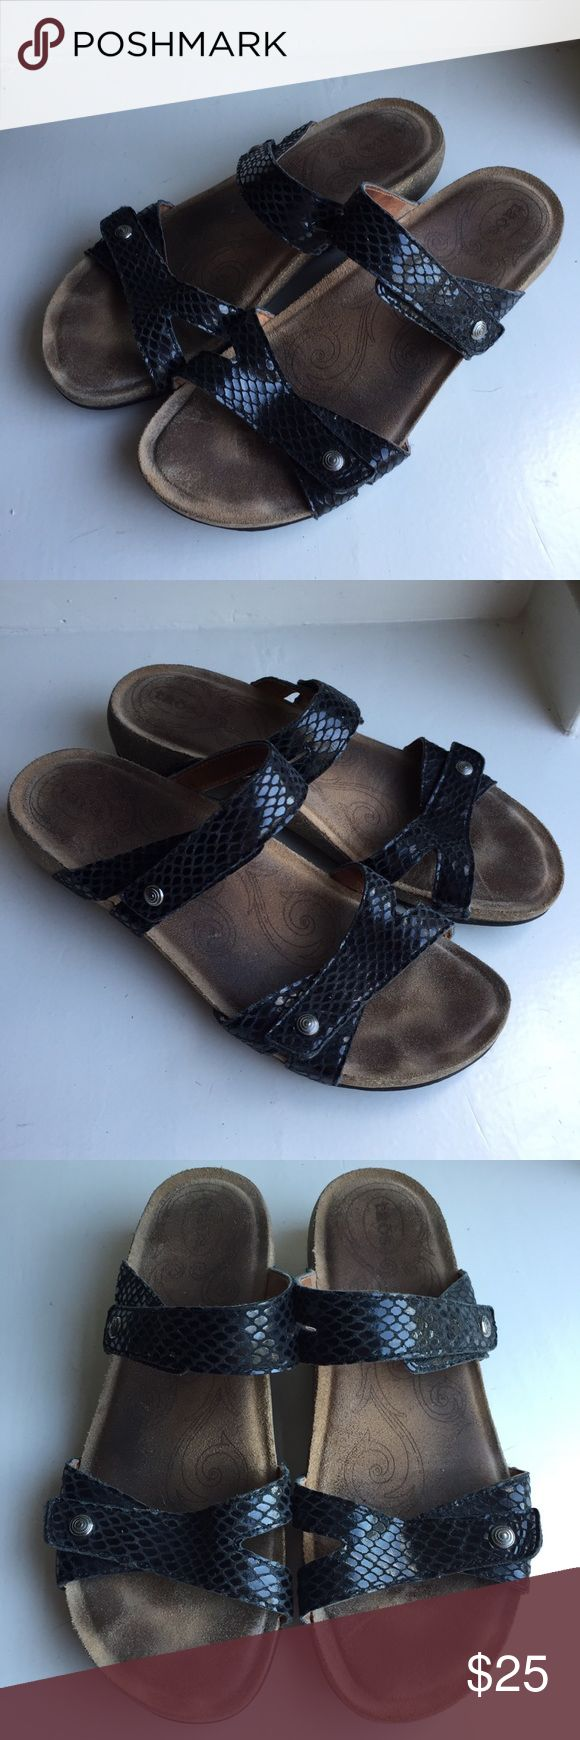 Taos sandals Sz 41 10 10.5 Black Slides faux snake Reference photos for general wear. Taos Footwear Shoes Sandals